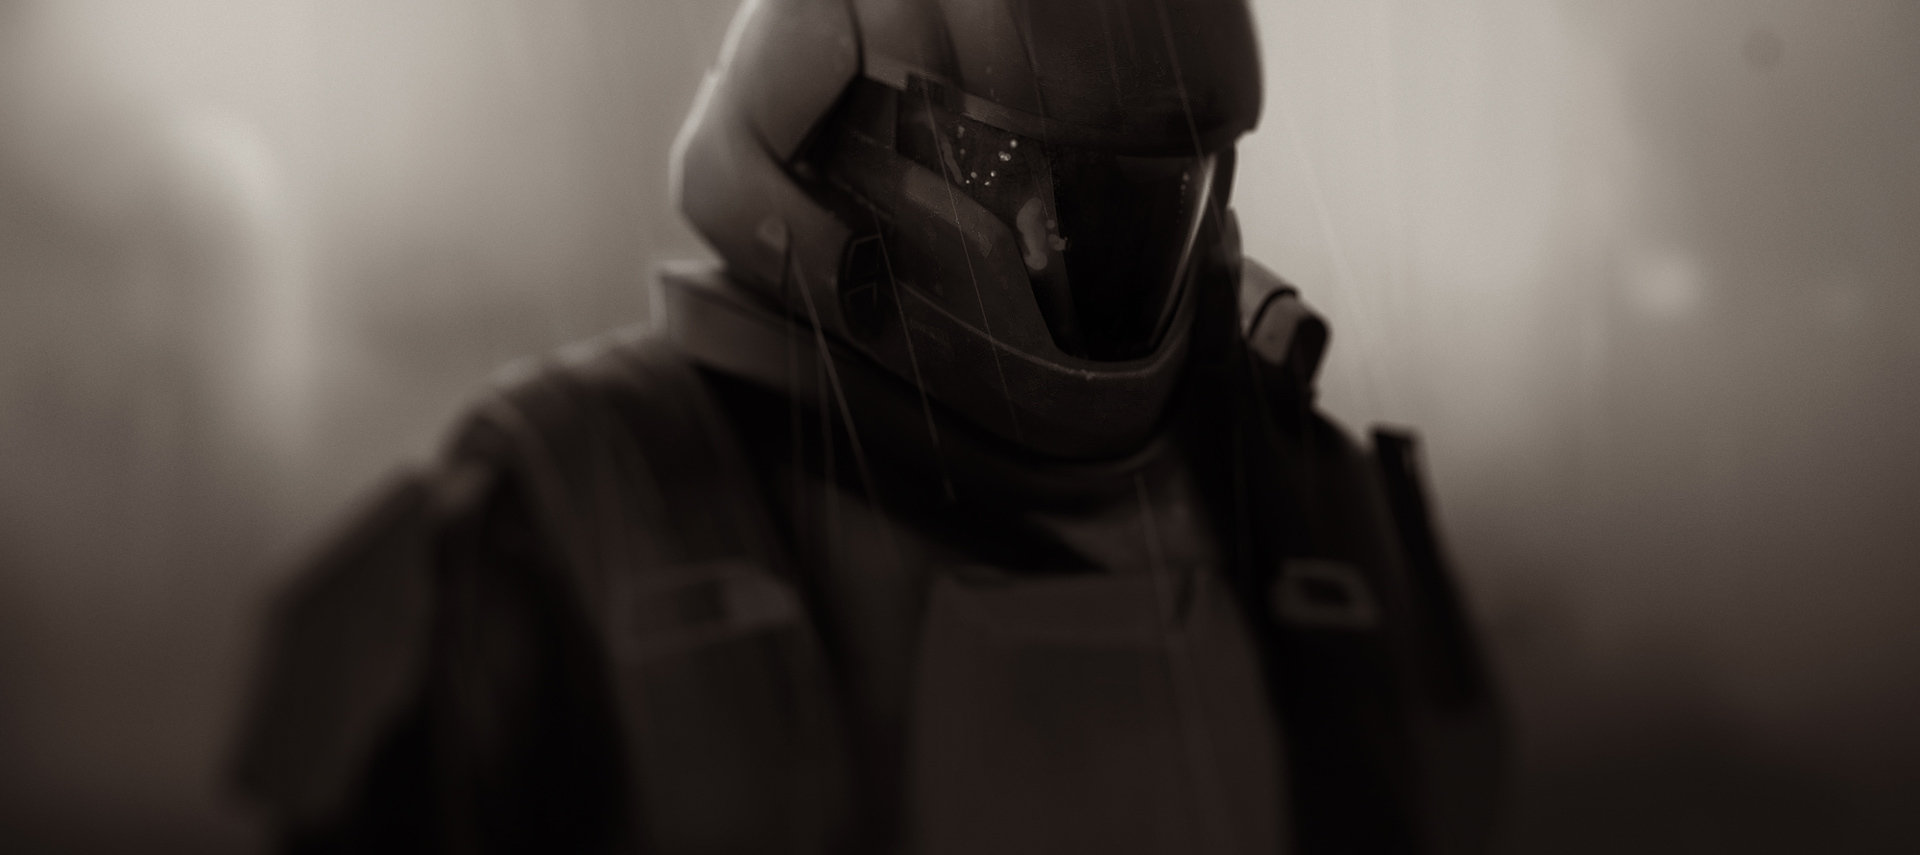 Halo odst character by tobylewin d4kp1y9